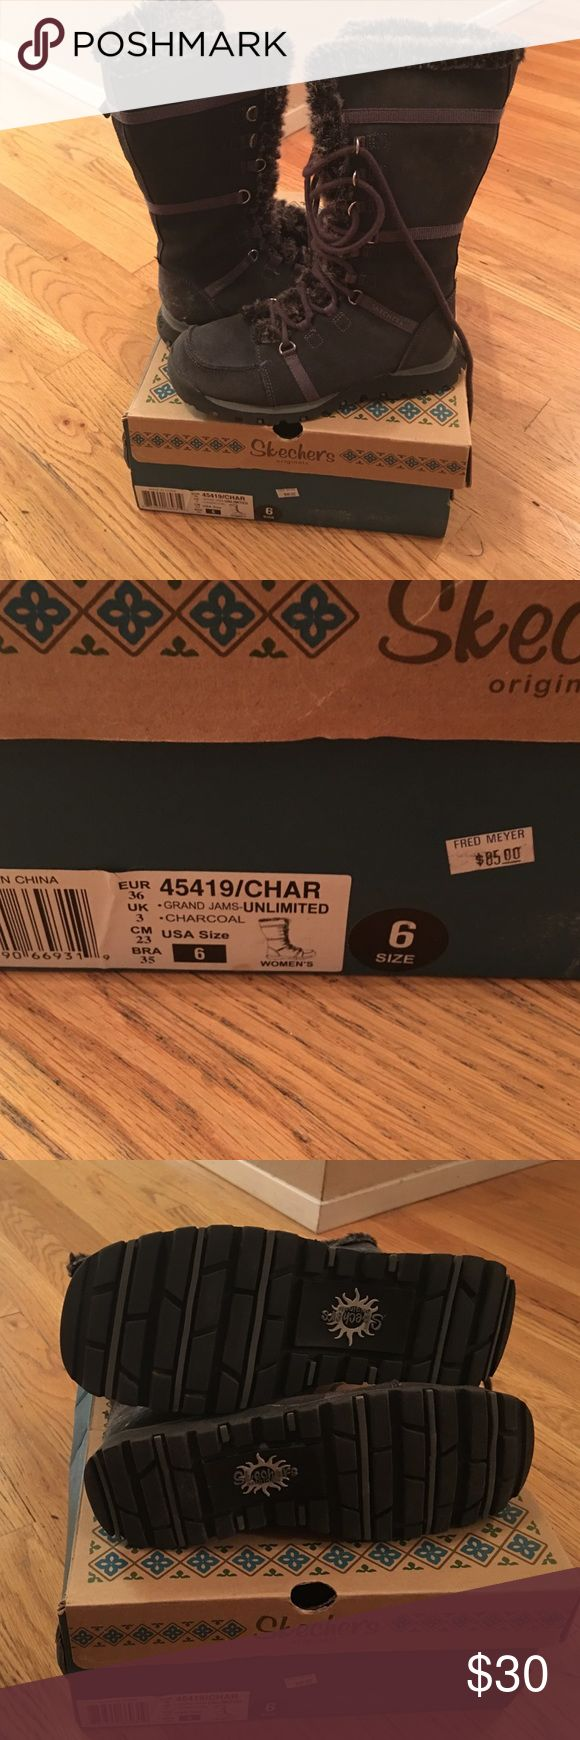 Sketchers boots grand jams unlimited size 6 Sketchers boots grand jams unlimited size 6 charcoal color comes with set of extra laces.                 45419/CHAR Sketchers Shoes Lace Up Boots